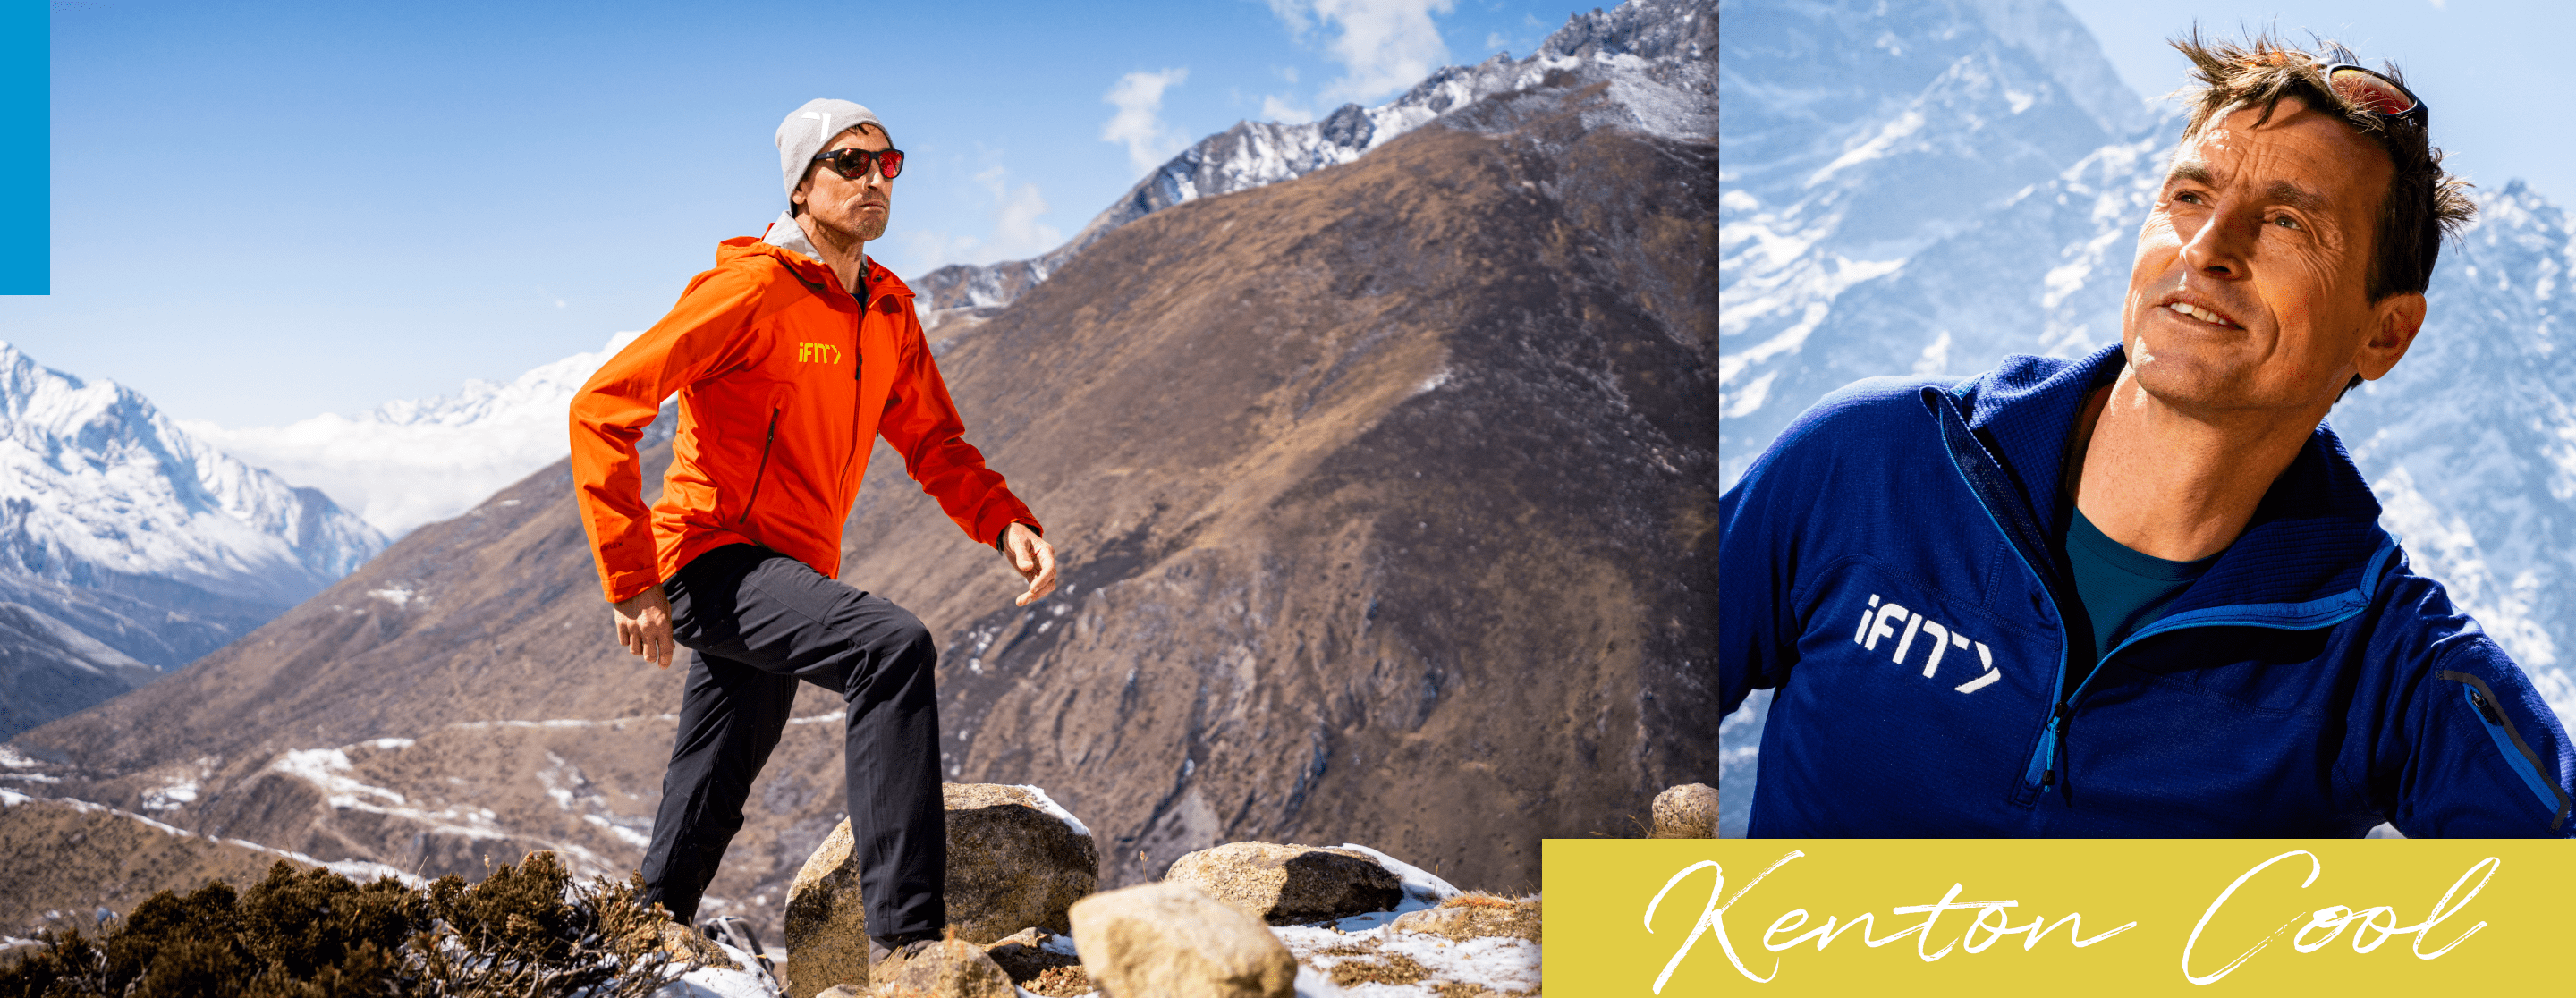 iFit Guide Kenton Cool Everest: A Trek To Base Camp workouts